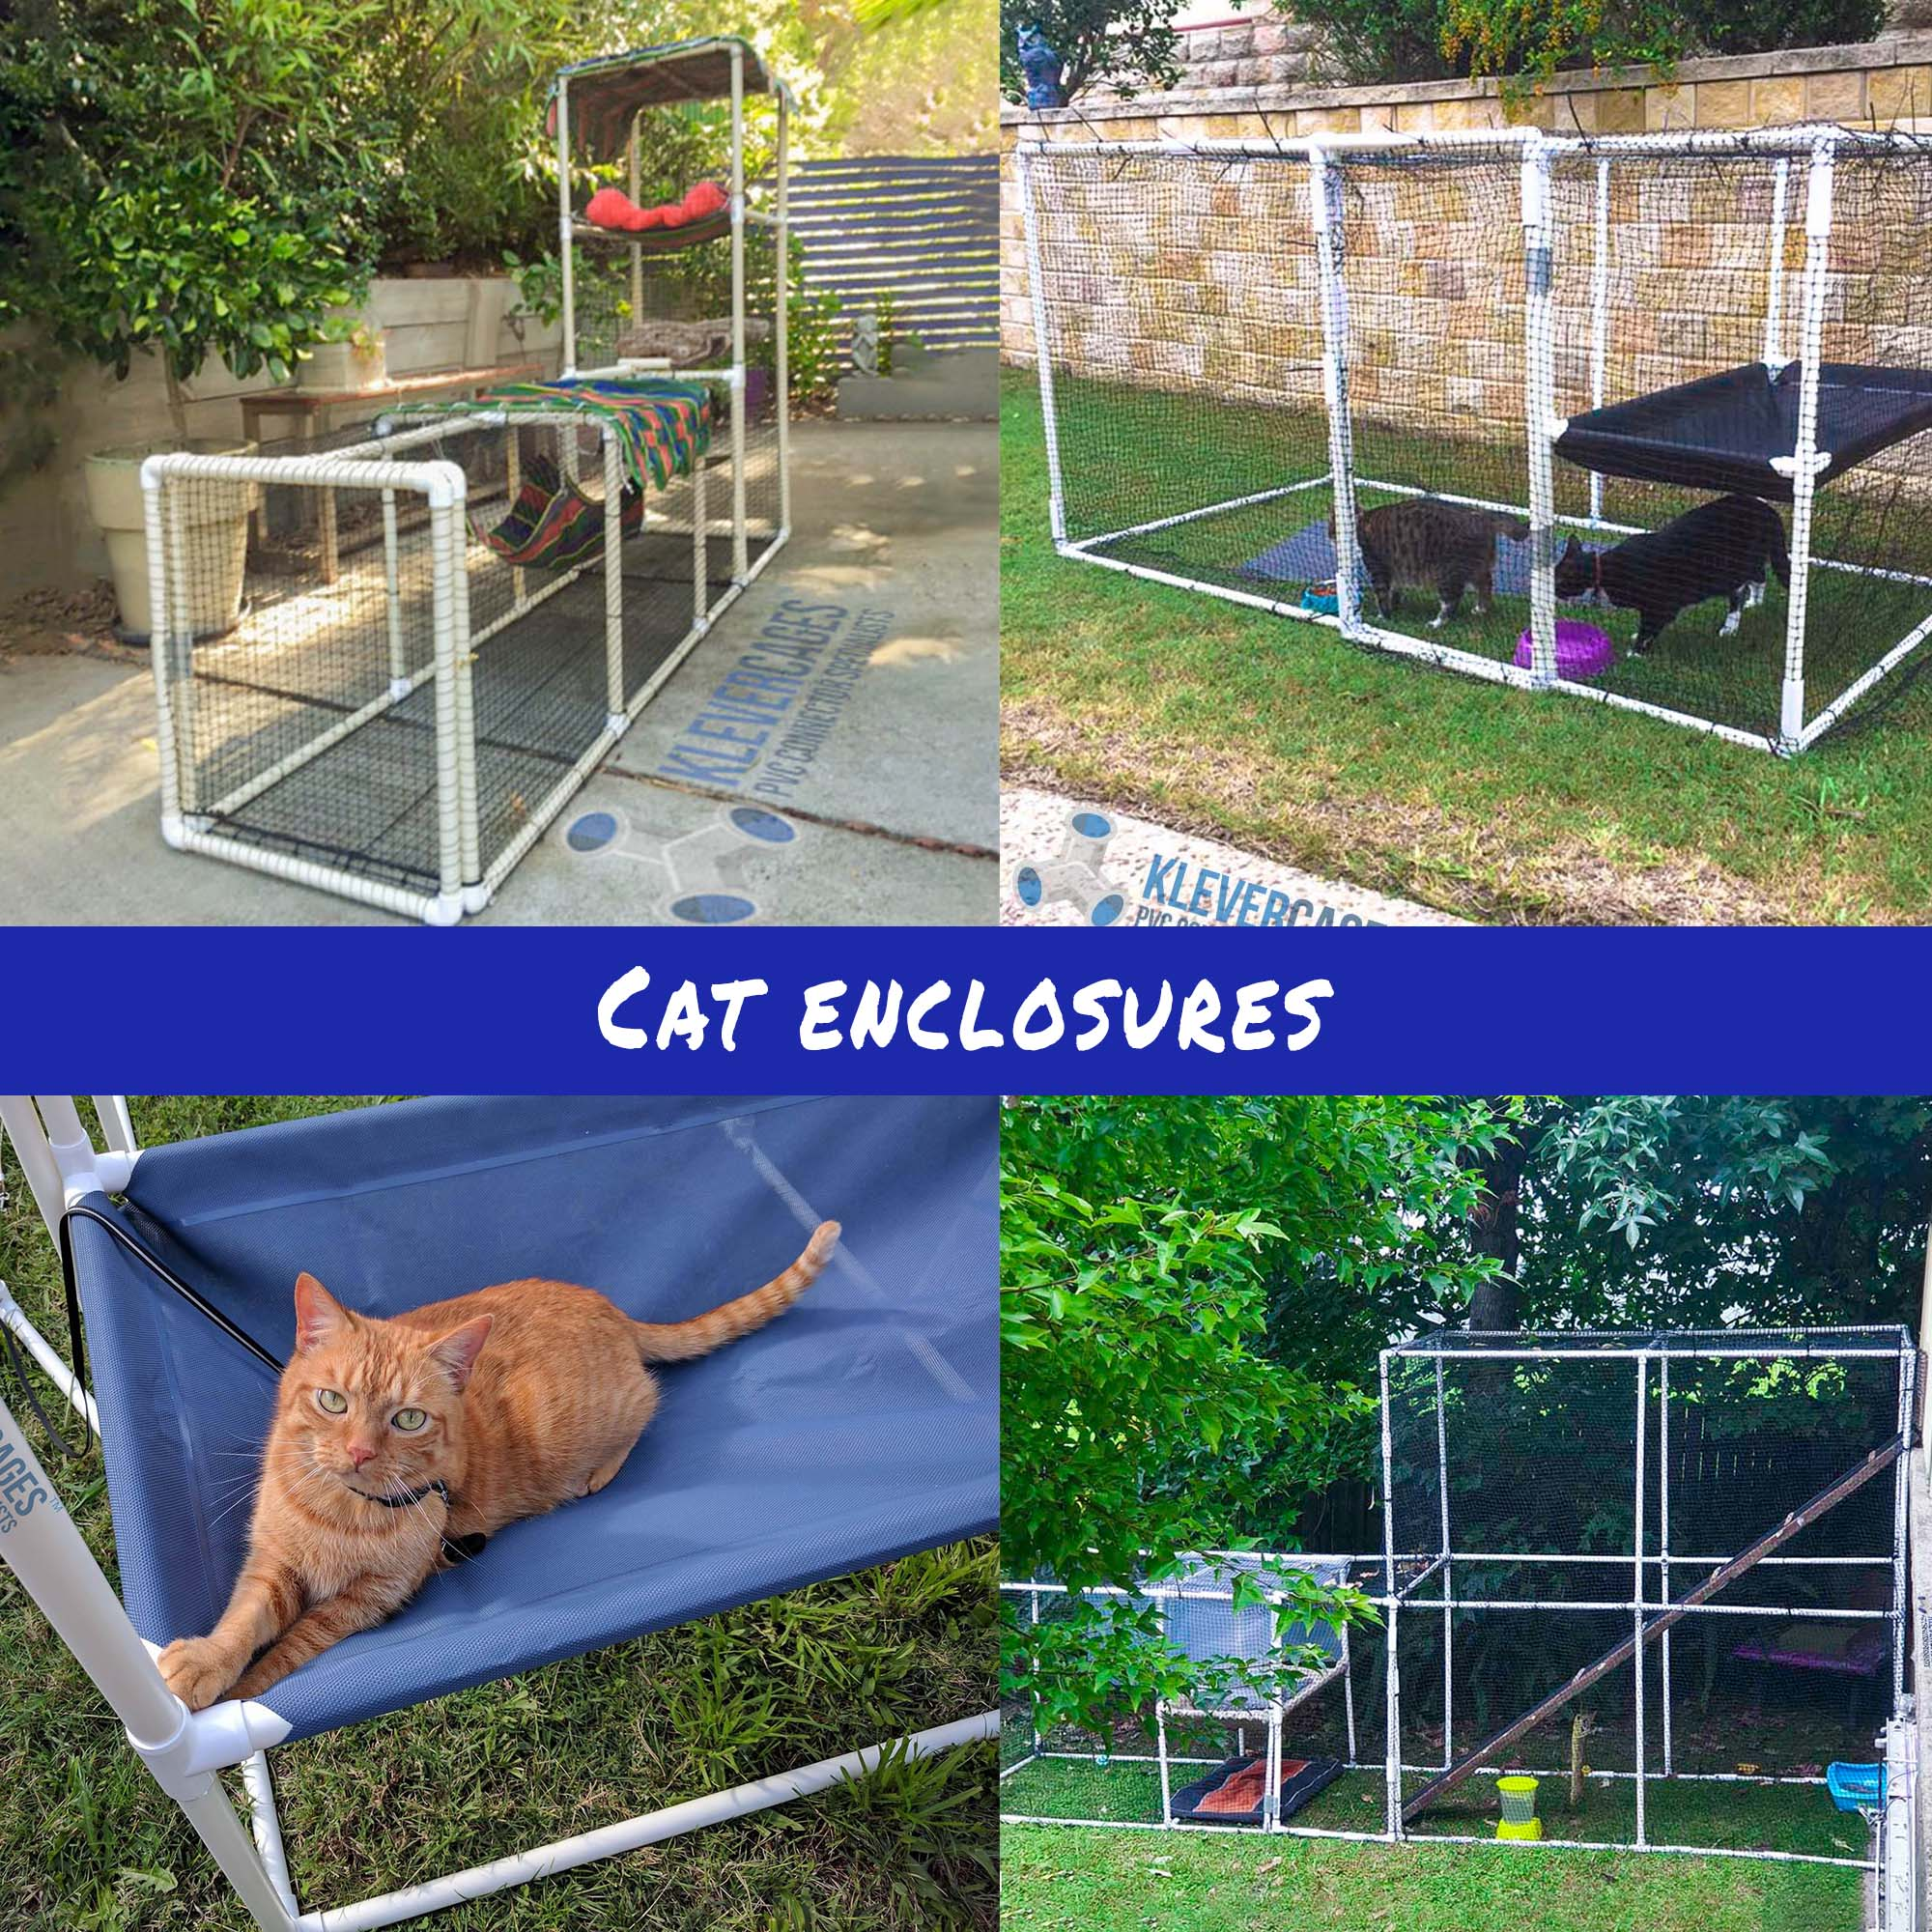 Klever Cages customer photos of cat enclosures designed and built by them from PVC fittings connectors and pipes